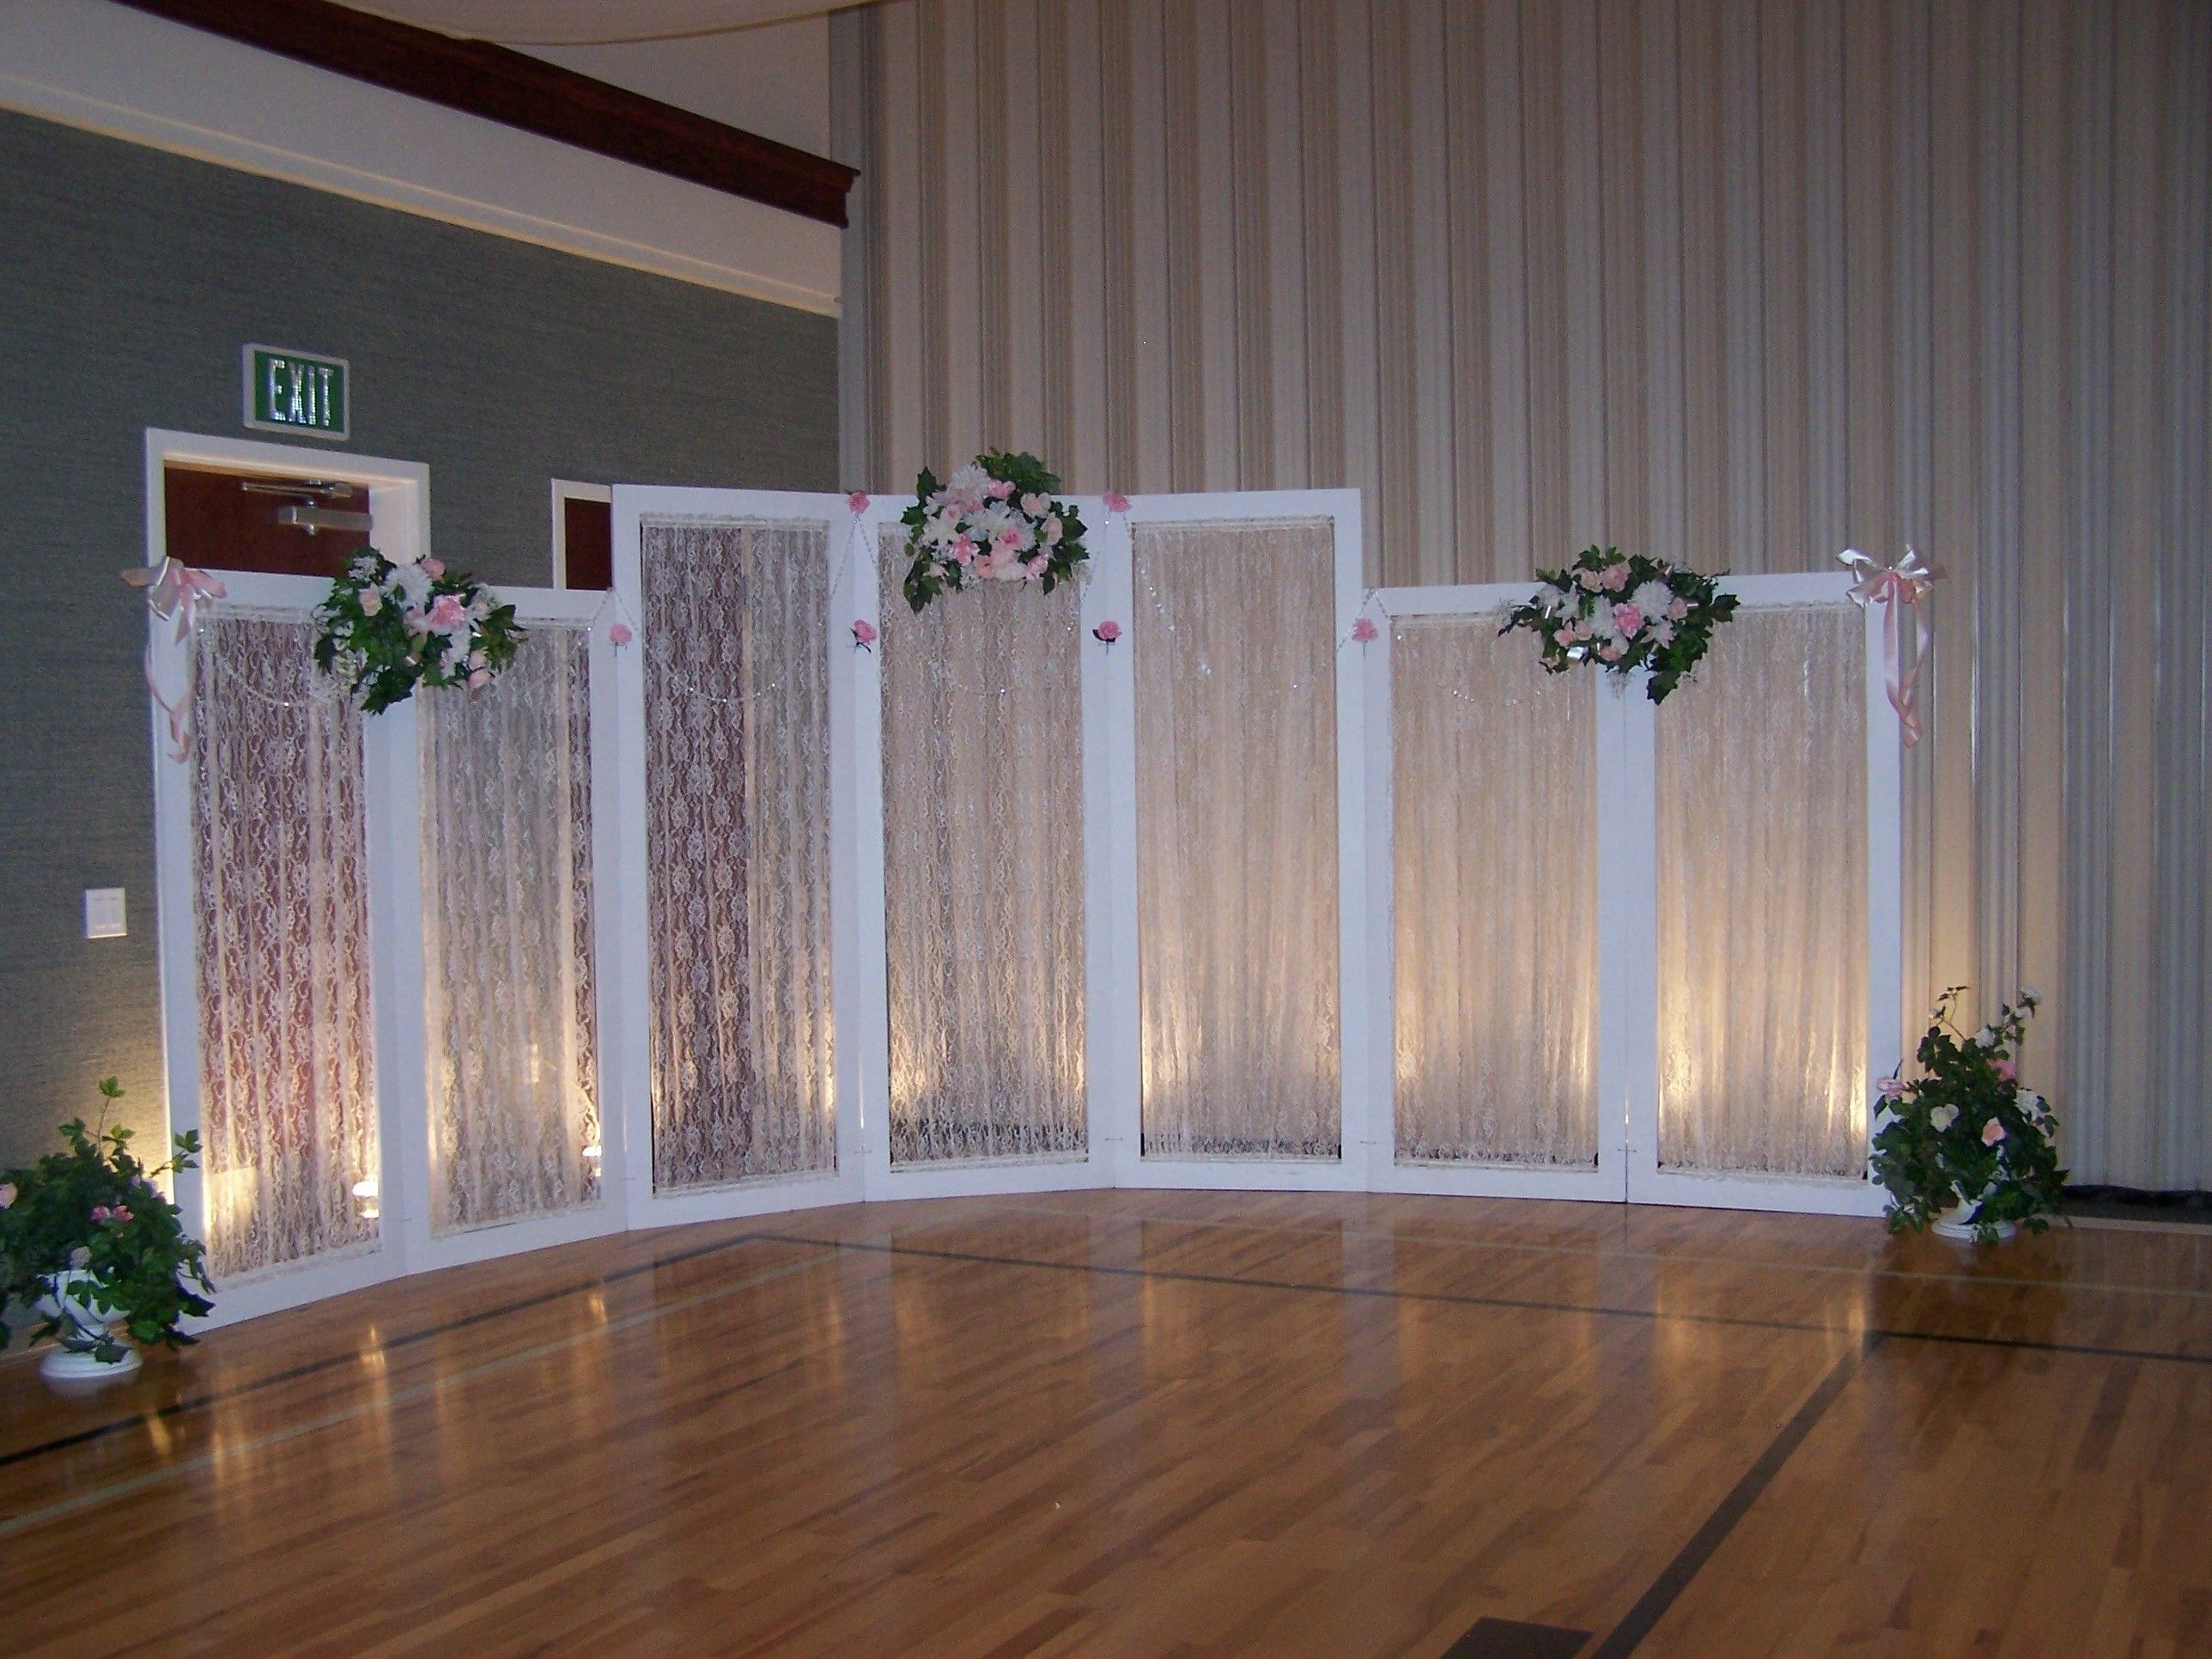 How to decorate a gym for a wedding reception google for Cheap elegant wedding decorations